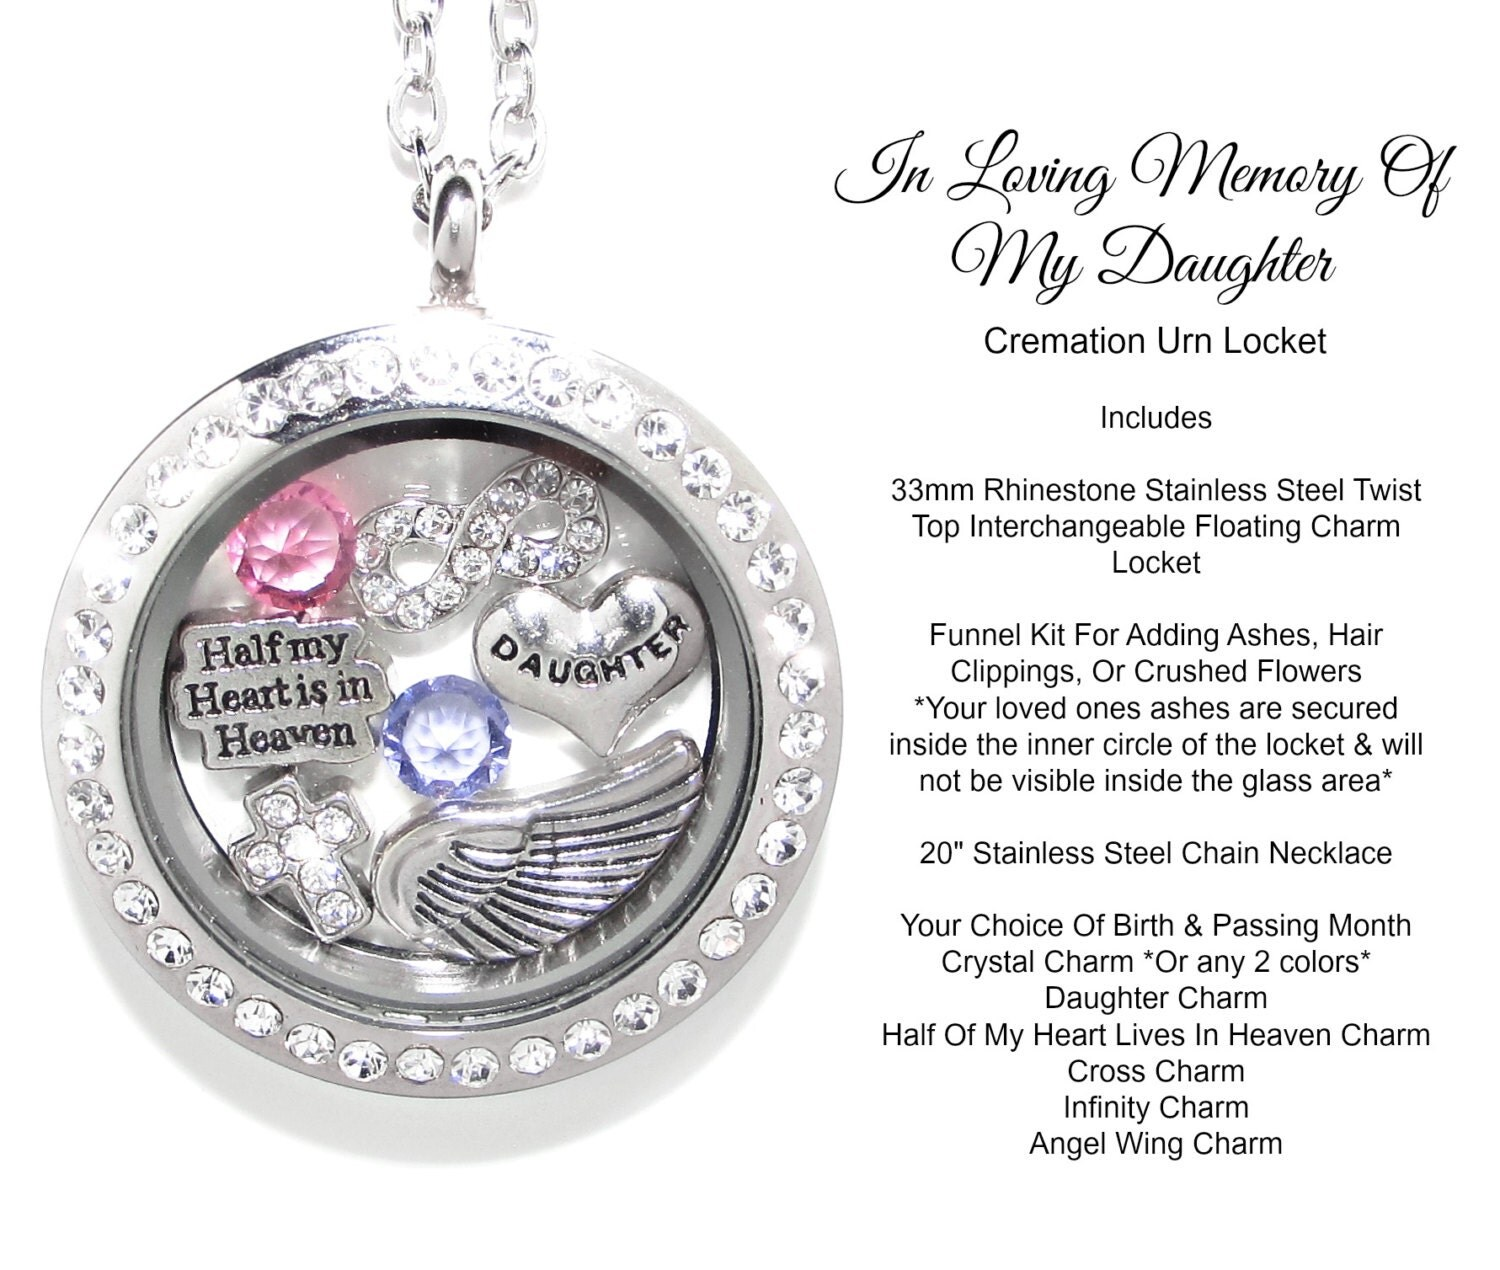 Daughter cremation urn cremation jewelry memorial necklace for Father daughter cremation jewelry